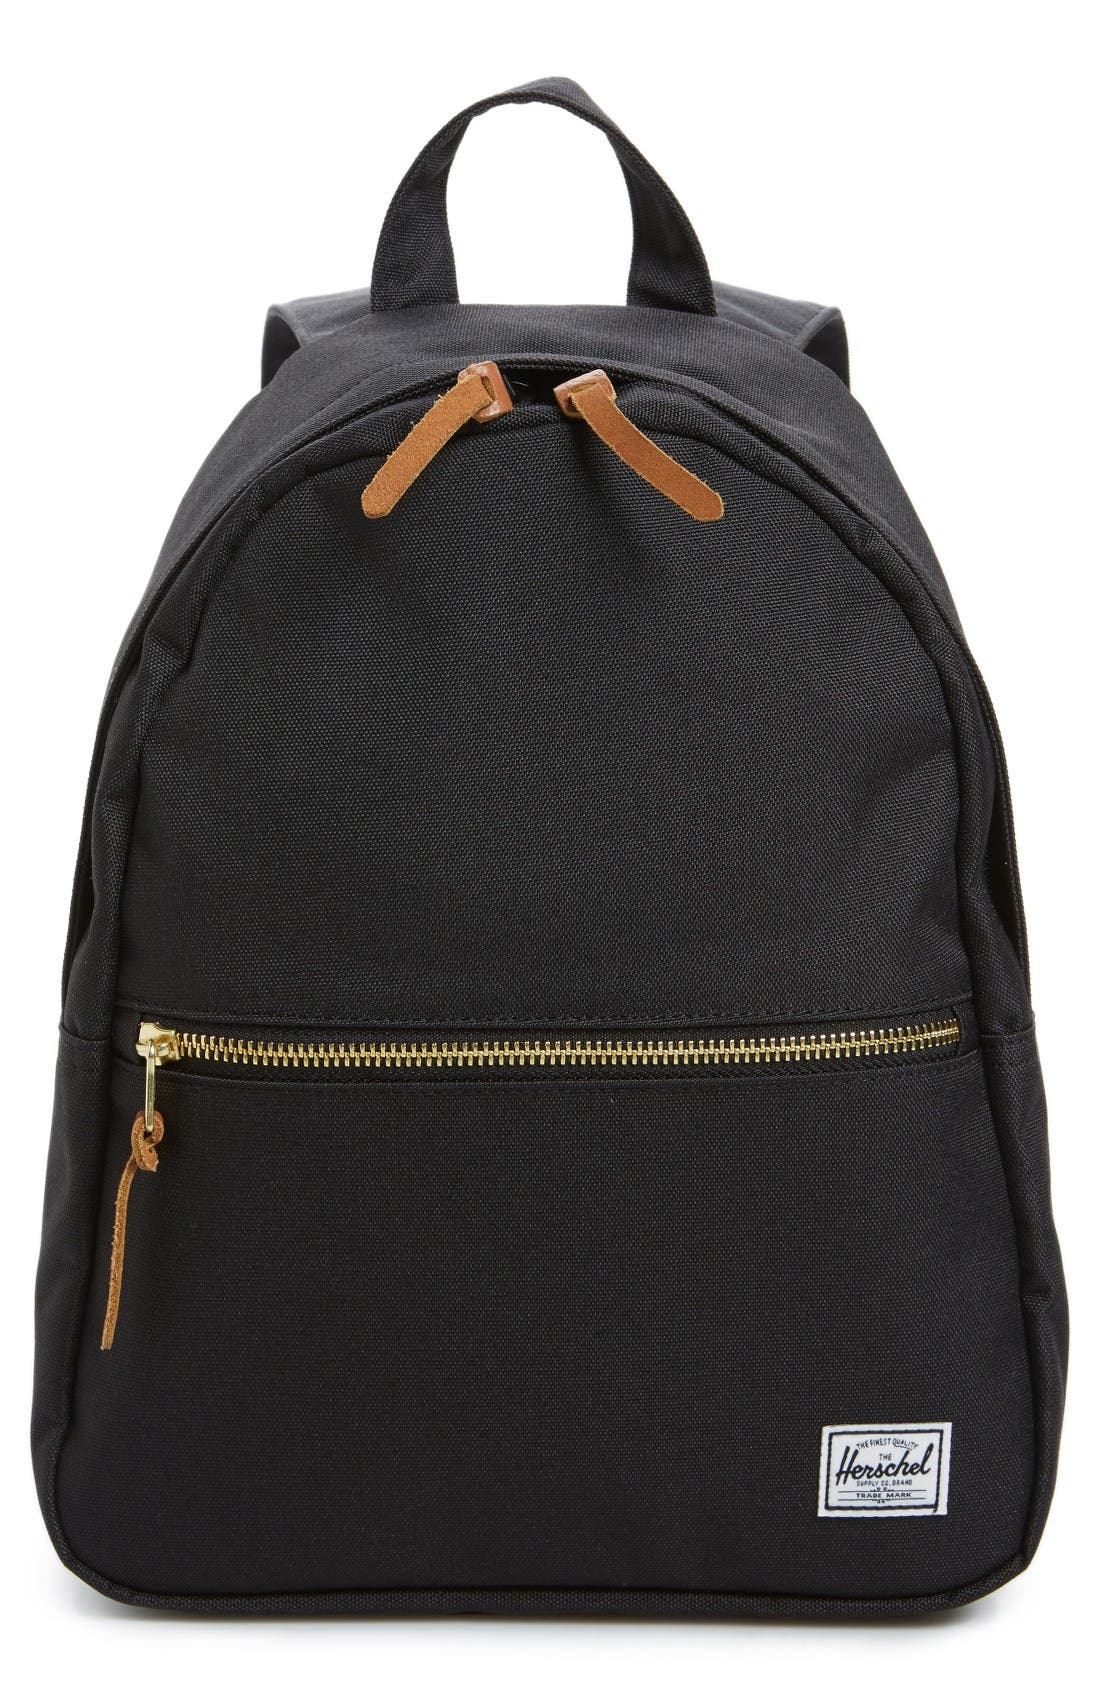 Main Image - Herschel Supply Co. 'Town' Backpack